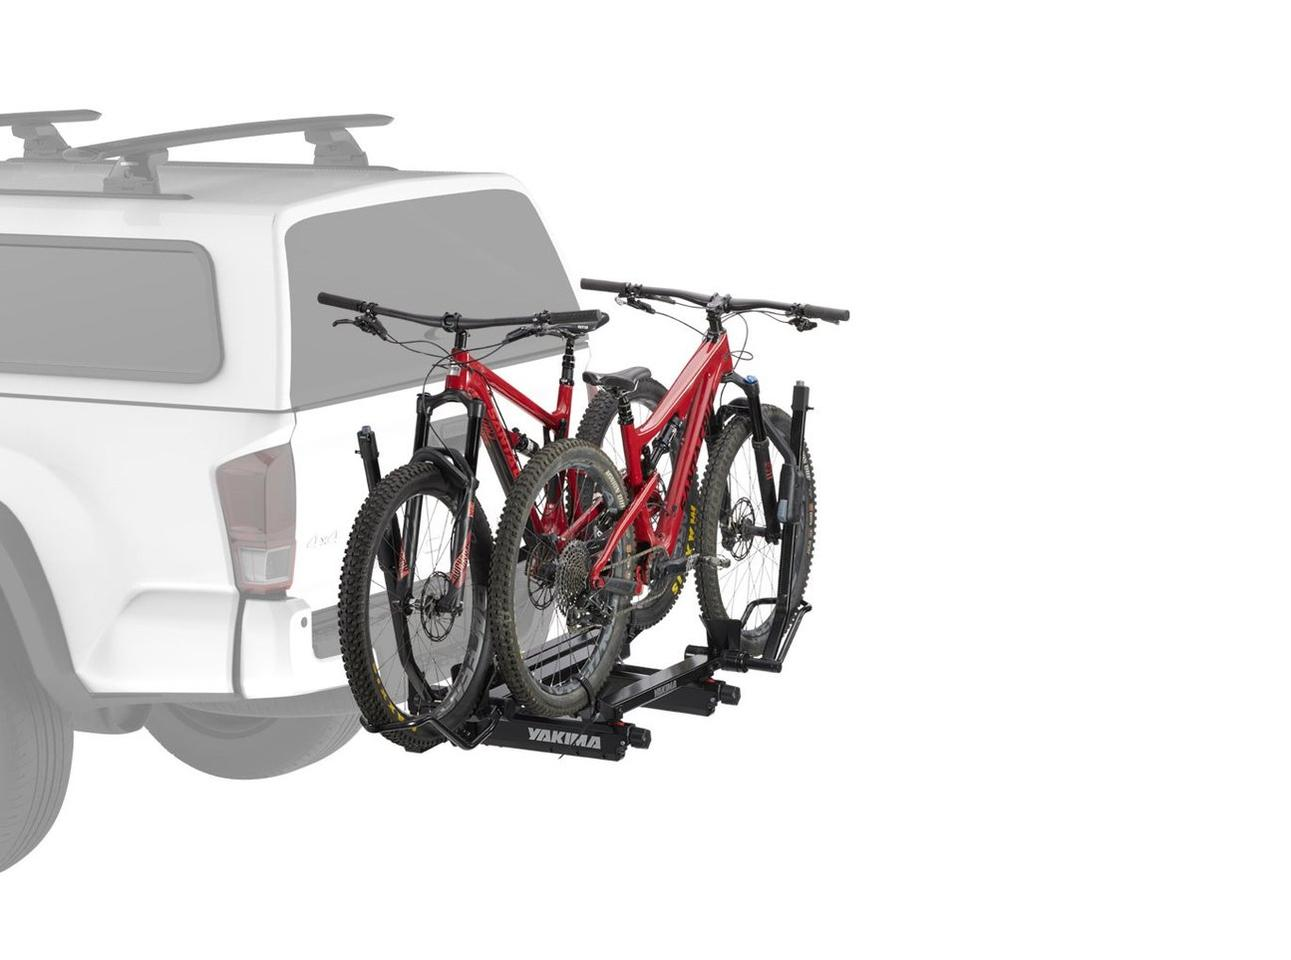 Yakima EXO DoubleUp bike rack mounted directly to the SwingBase for a lower, simpler setup